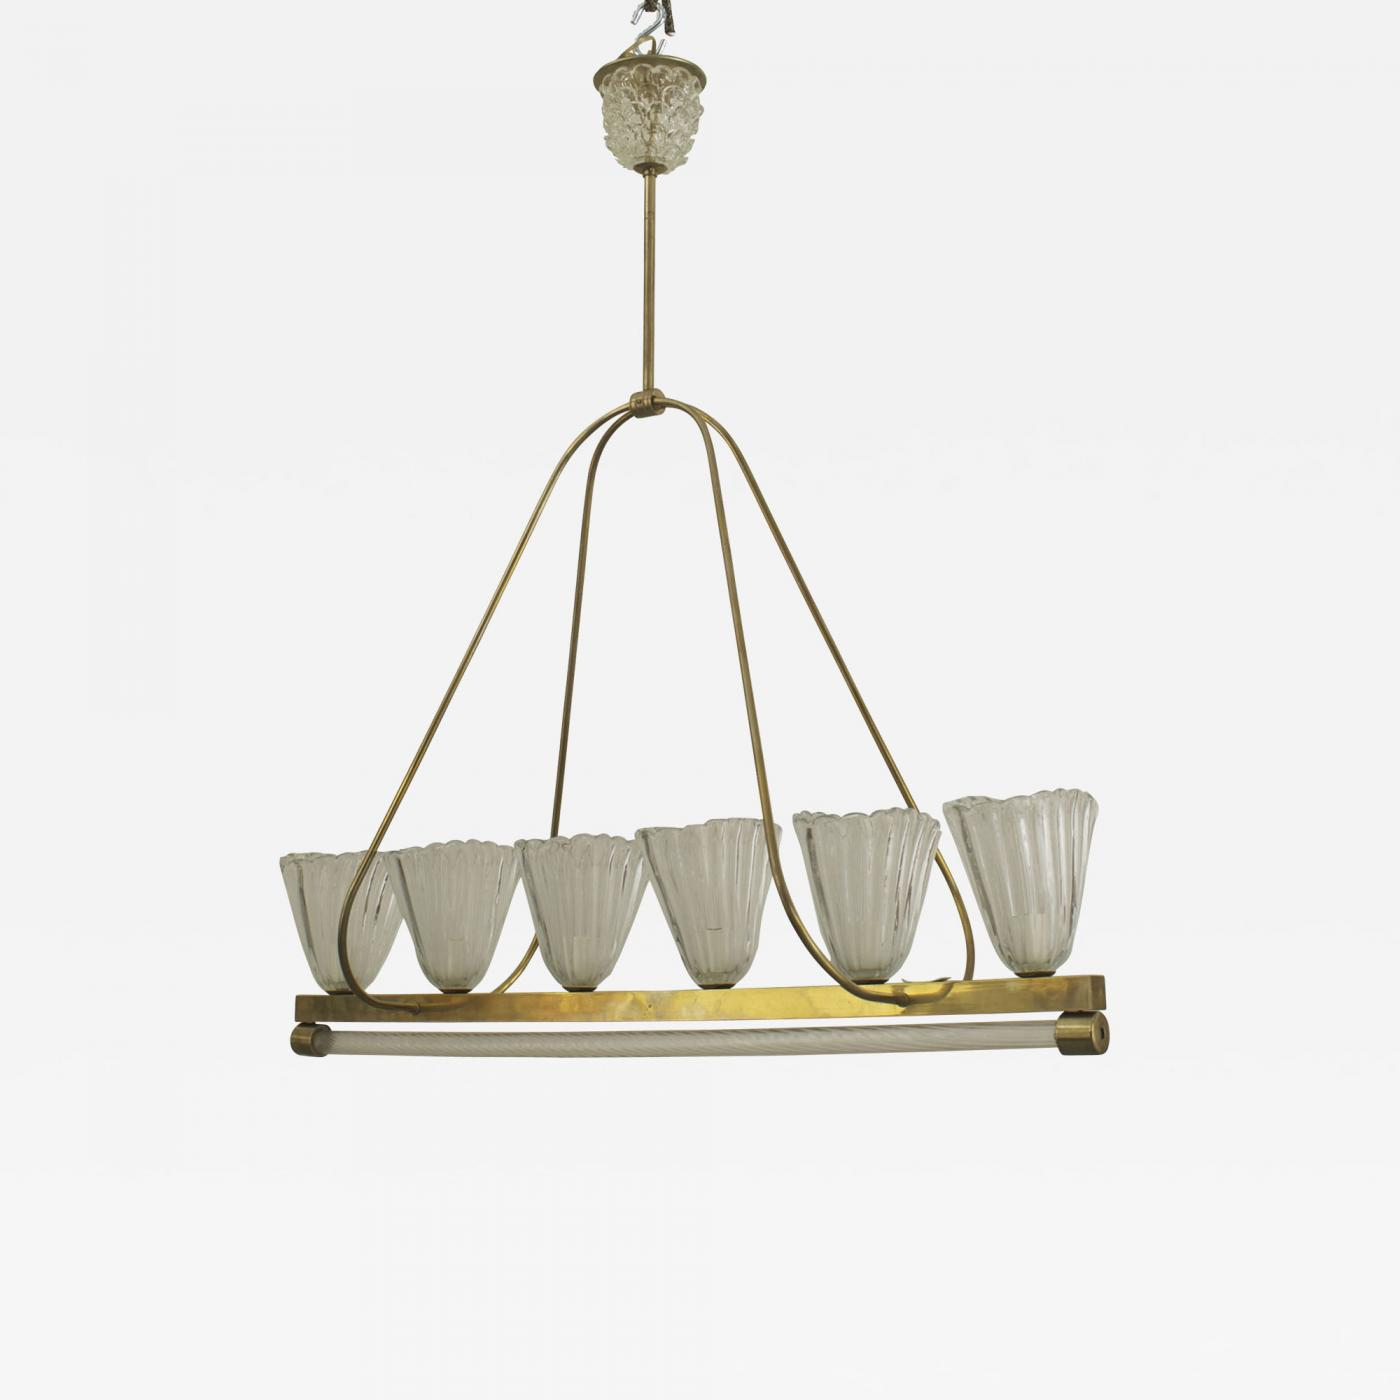 Barovier toso italian 1940s chandelier listings furniture lighting chandeliers and pendants aloadofball Image collections